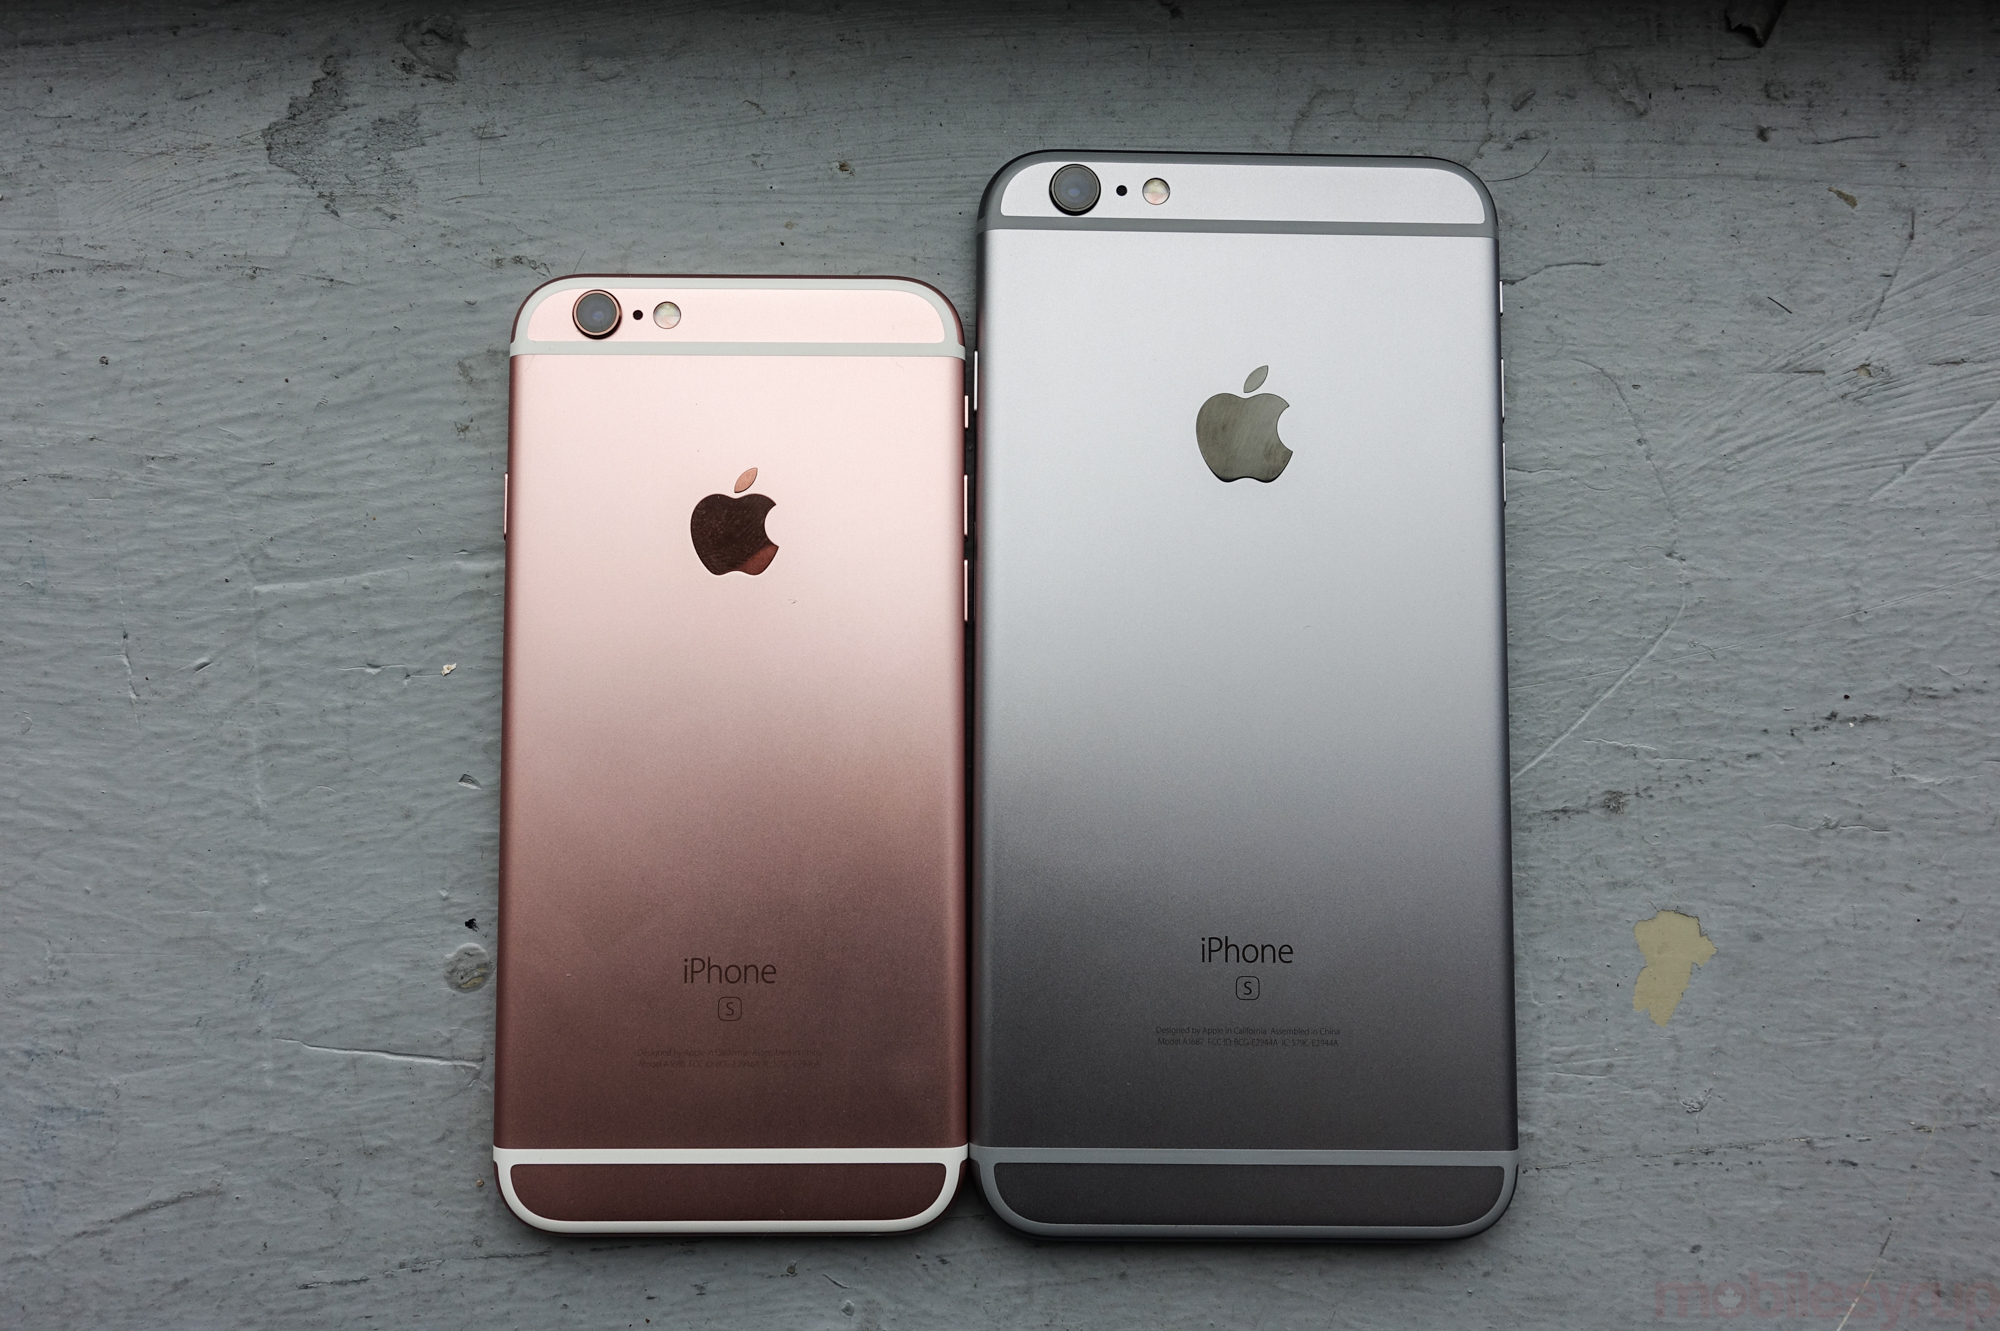 Apple IPhone 6s And IPhone 6s Plus Now Available In Canada